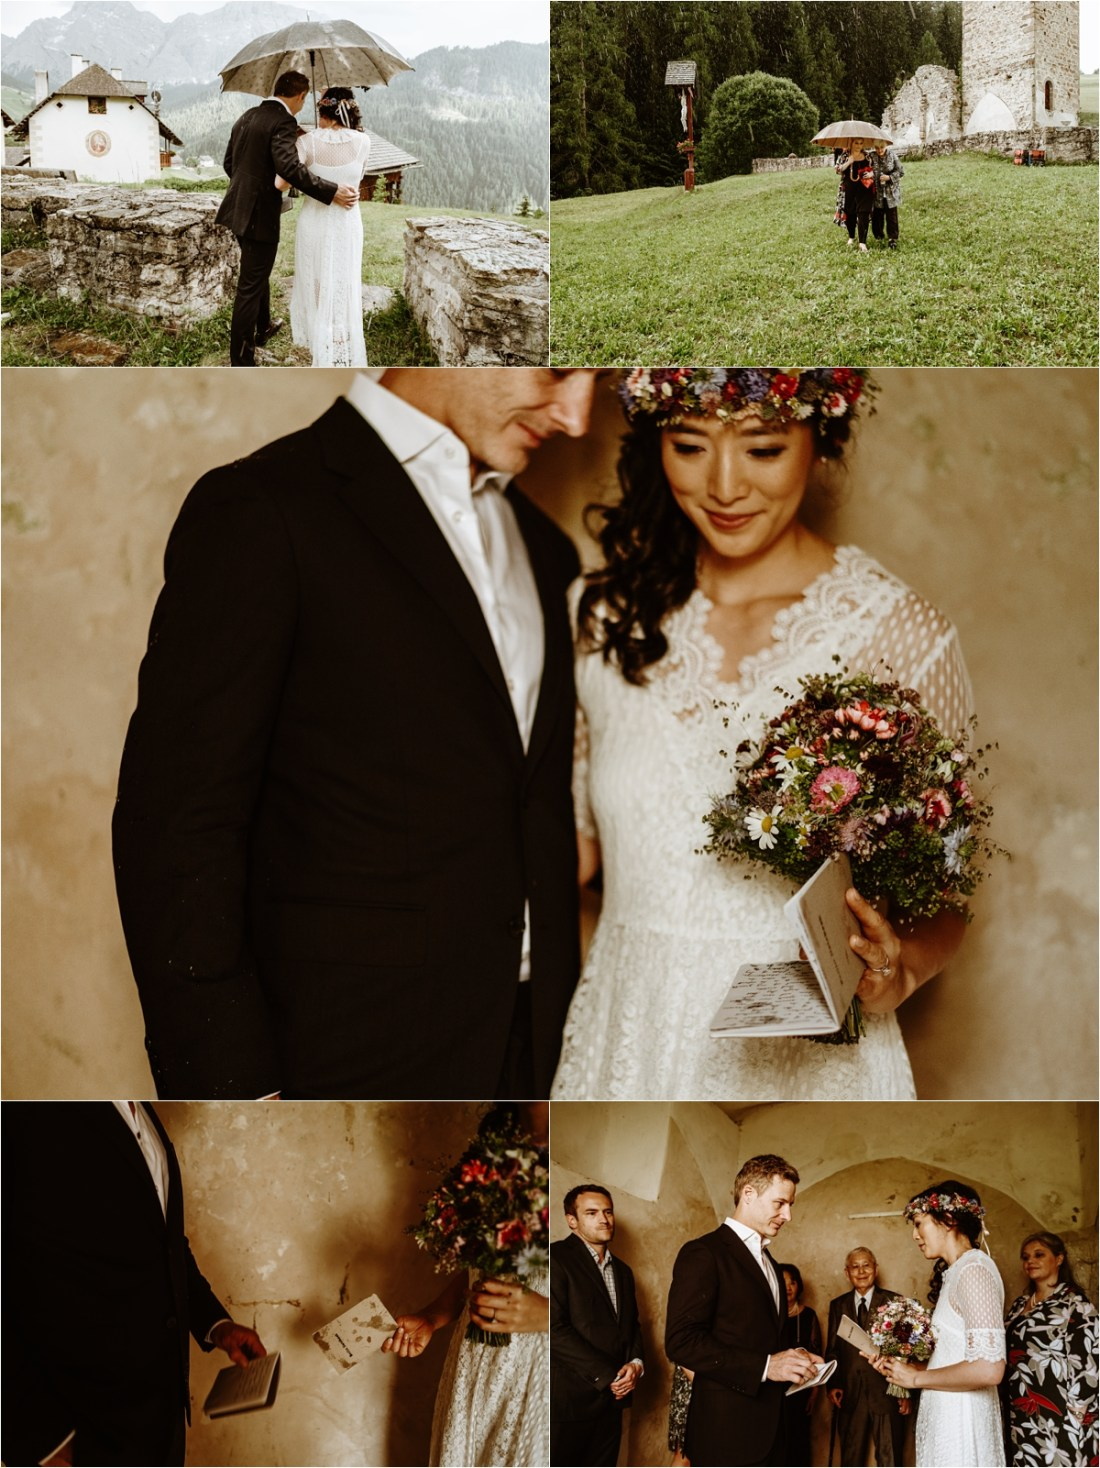 Rain forces the couple to take shelter in a chapel. Photo by Wild Connections Photography